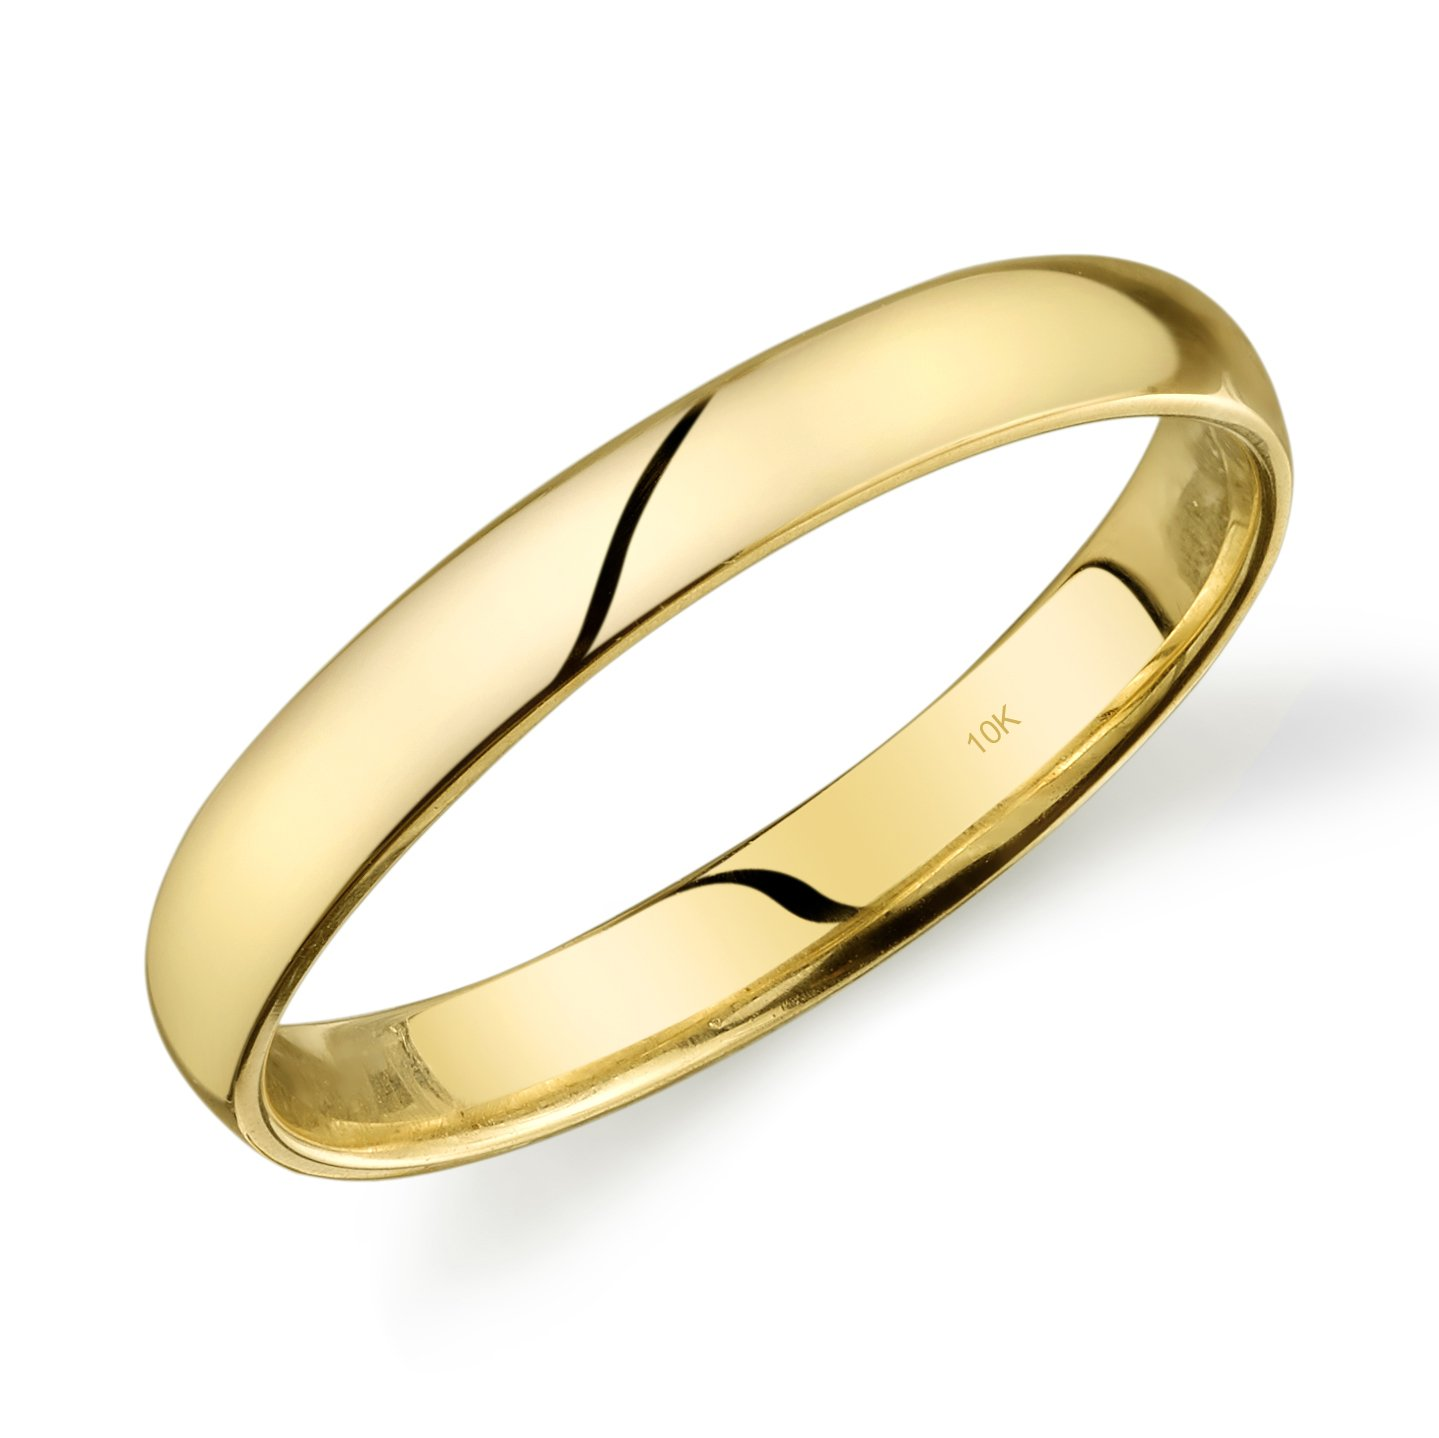 10k Yellow Gold Light Comfort Fit 3mm Wedding Band Size 6